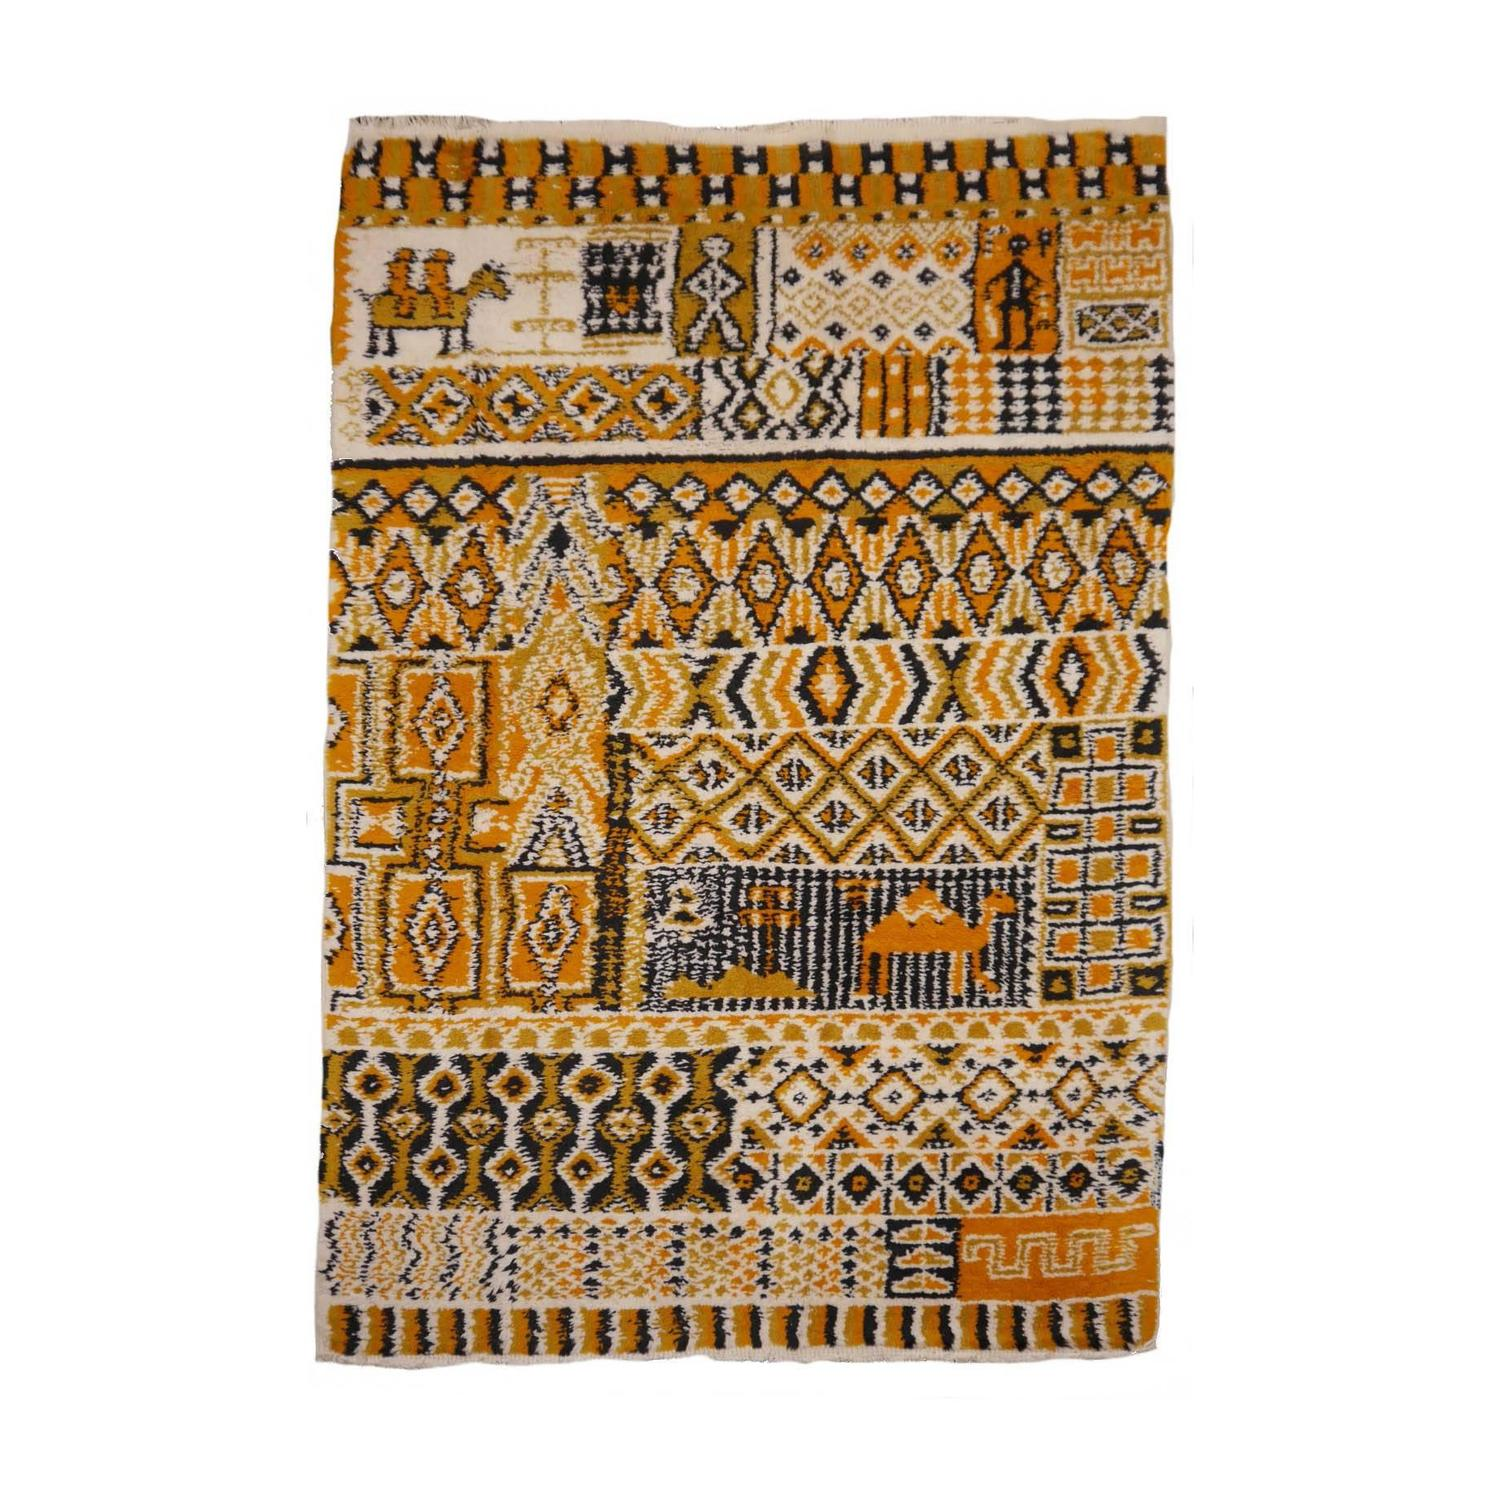 Rare MoroccanNorth African Tribal Berber Rug For Sale at